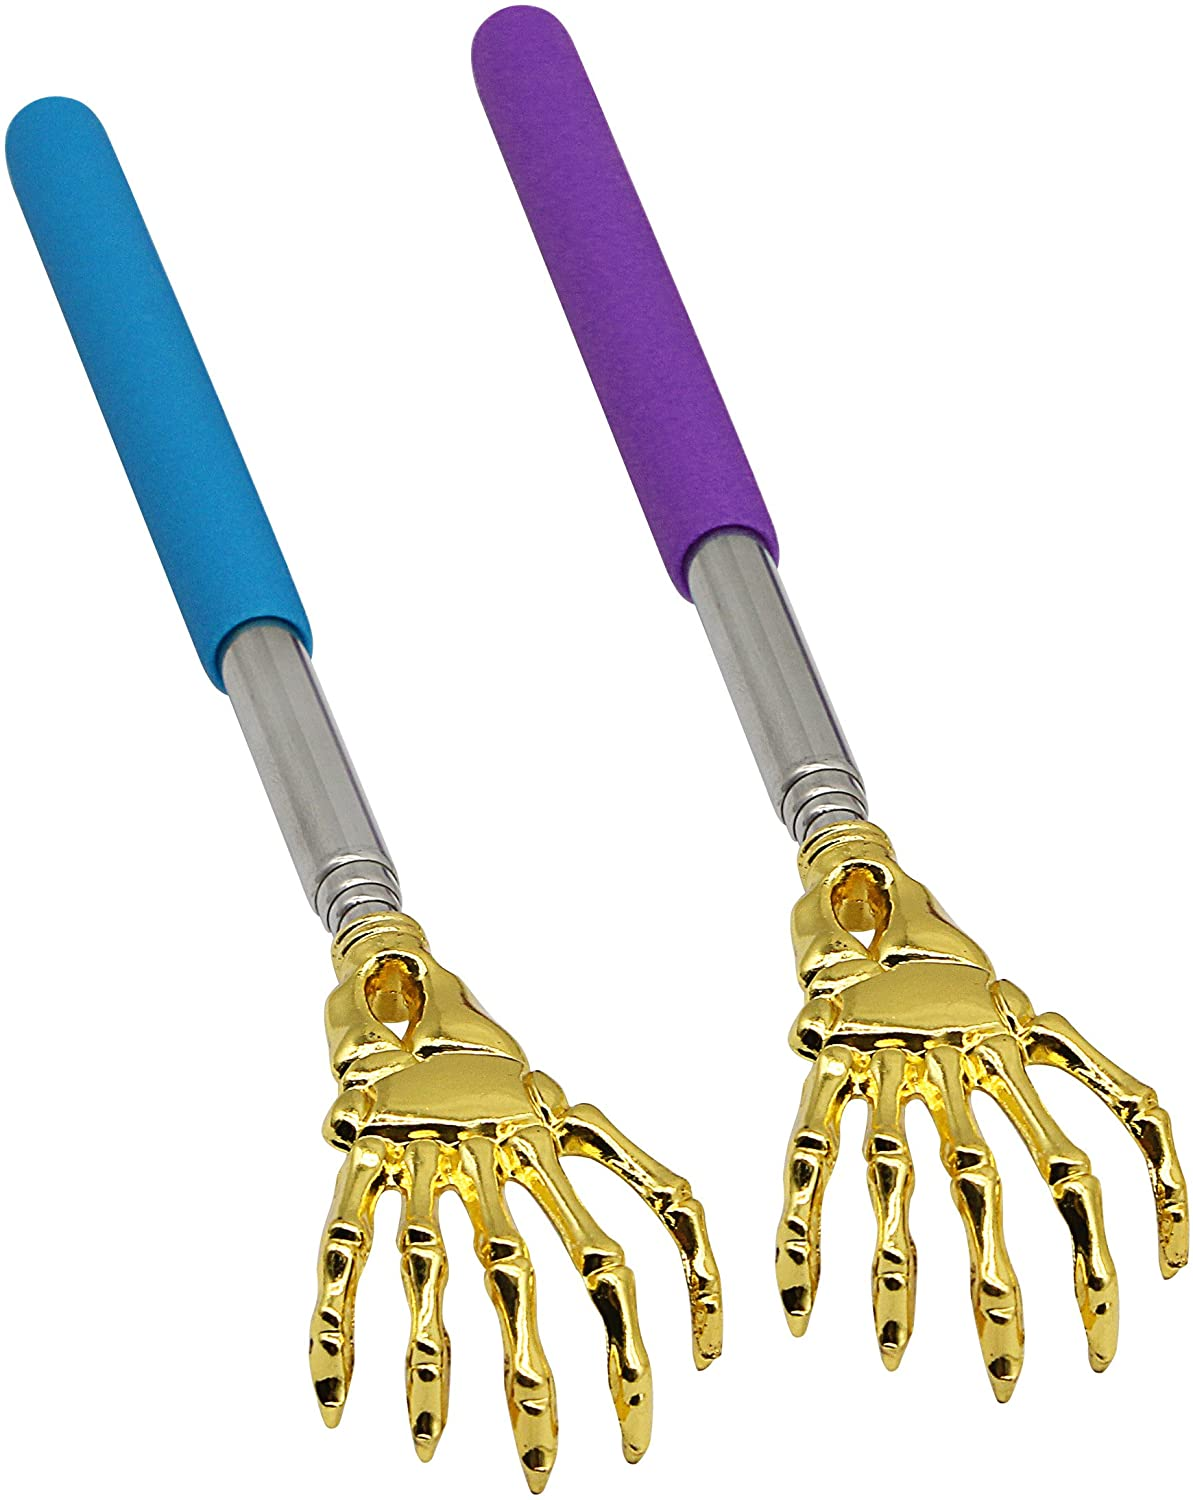 SinLoon Back Scratcher & Back Massager